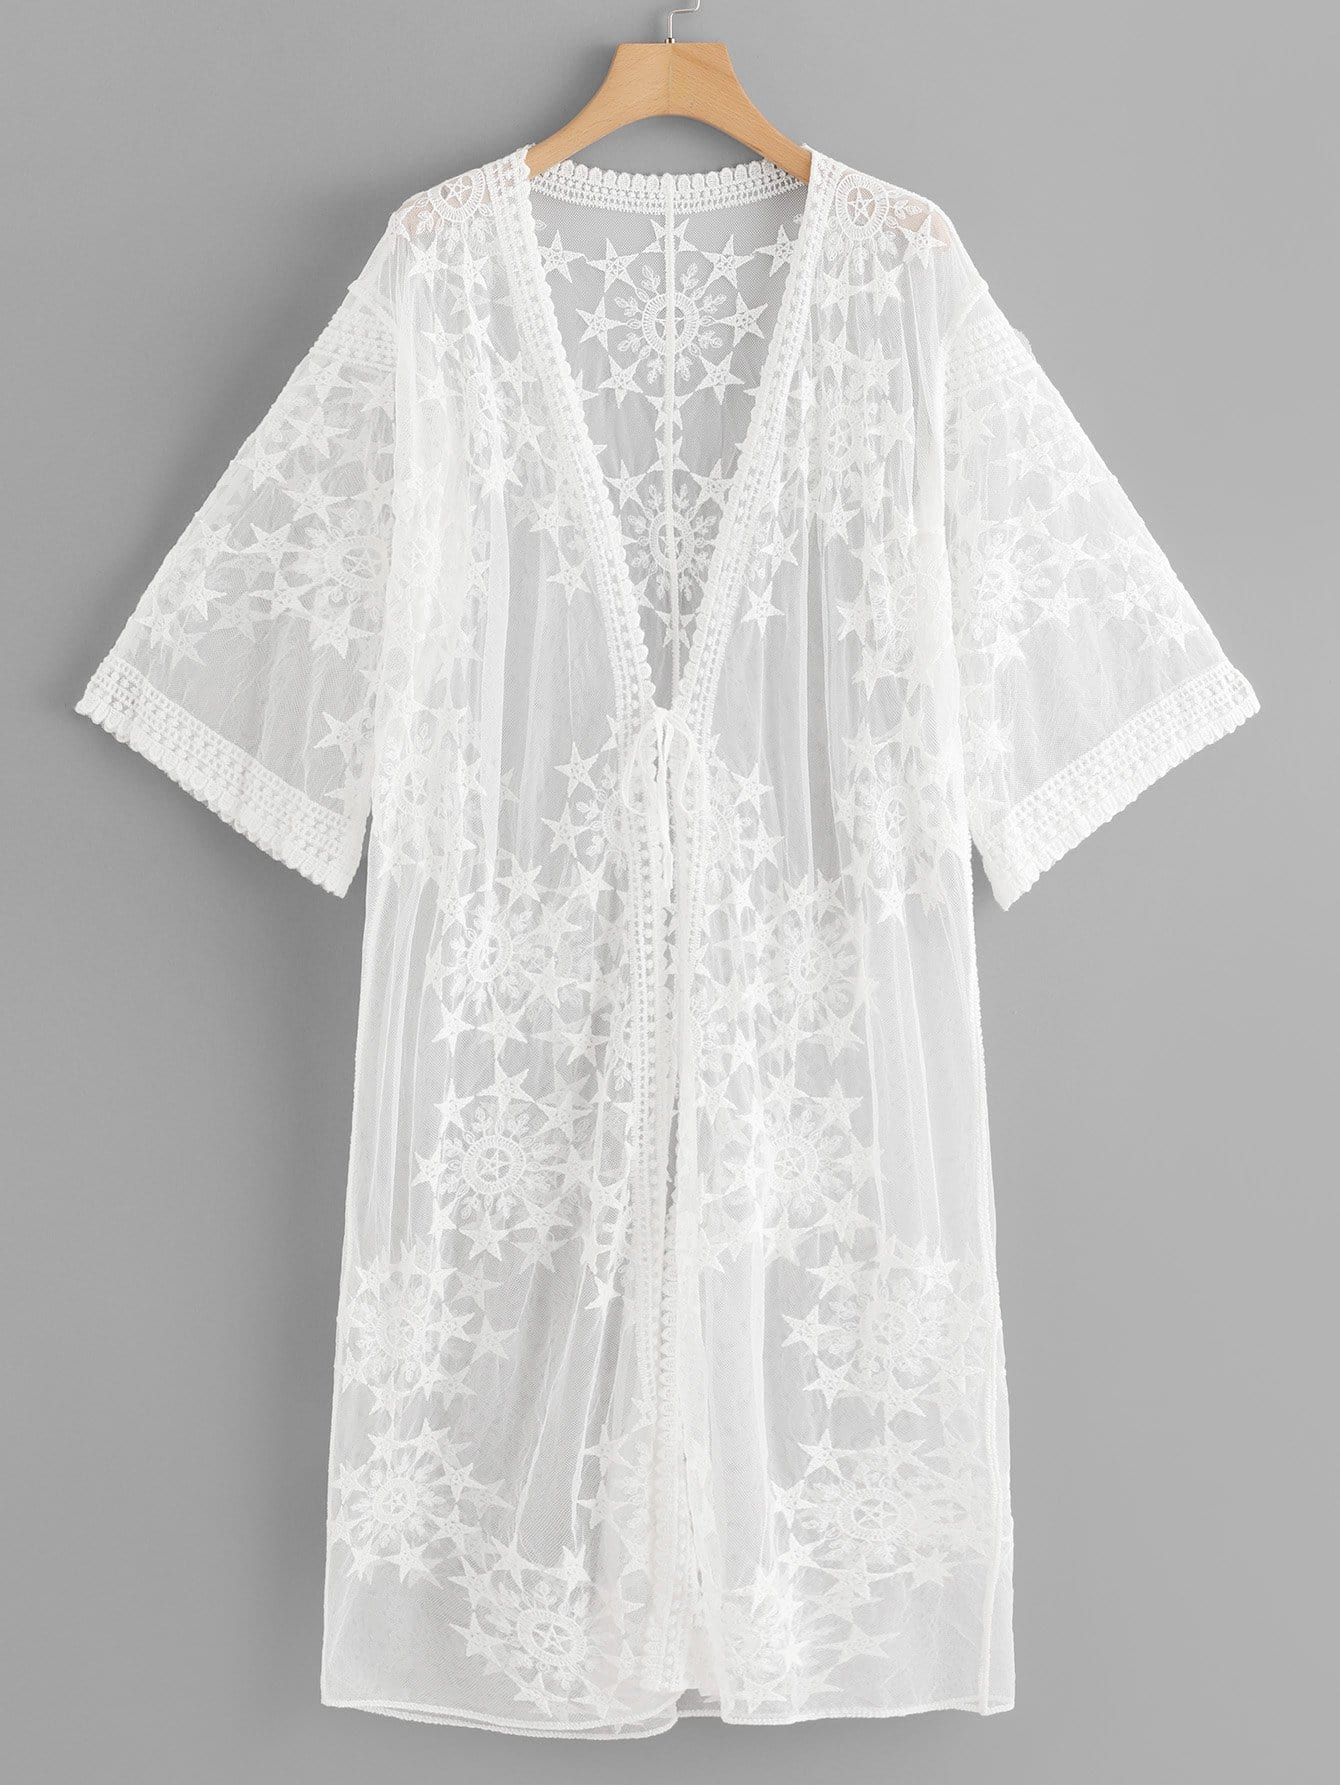 Lace Floral Embroidery Sheer Mesh Panel Kimono floral lace sheer top